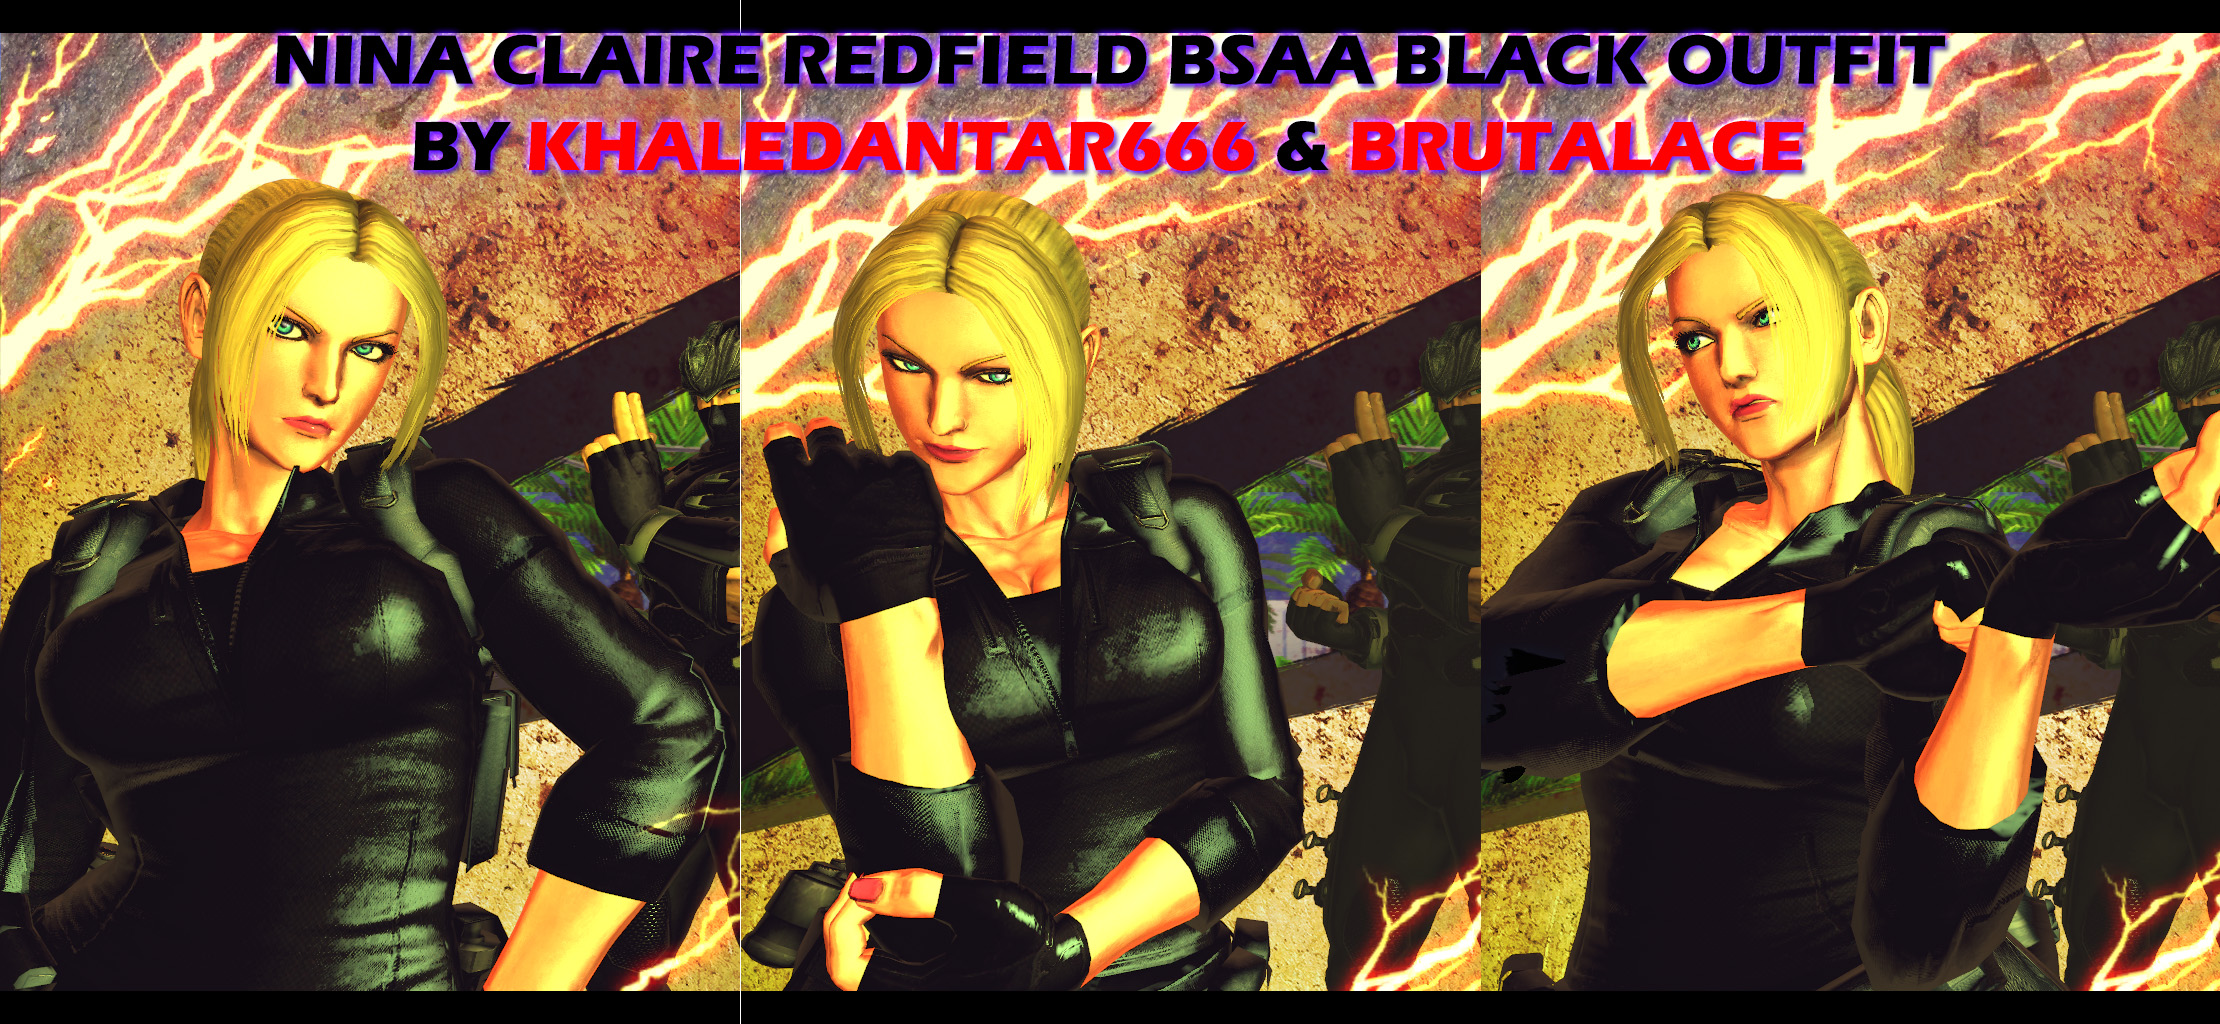 Nina Claire Redfield BSAA Black Outfit by BrutalAce